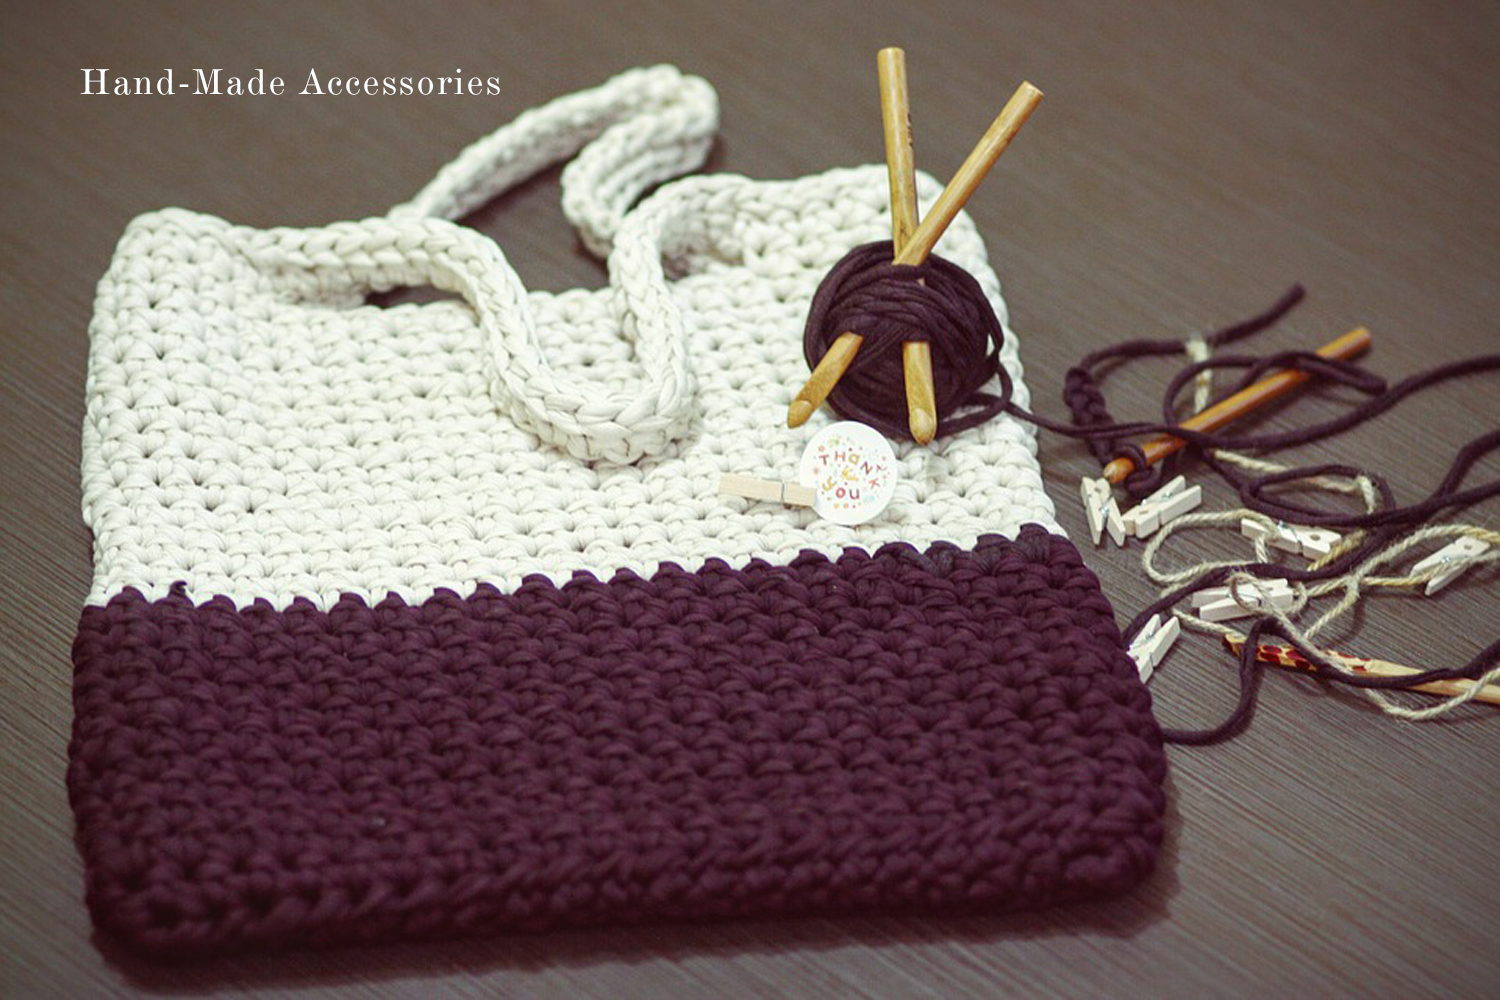 hand-made accessories